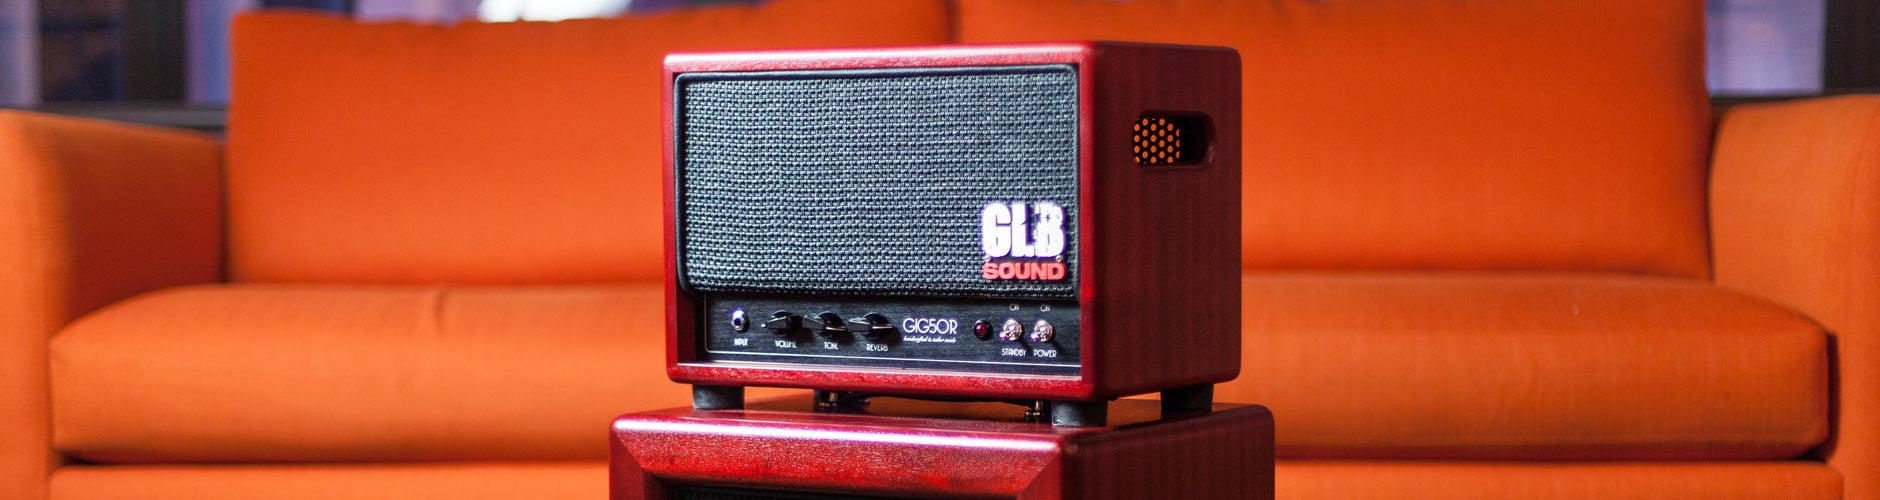 GLB Sound Amplifiers At The Music Zoo